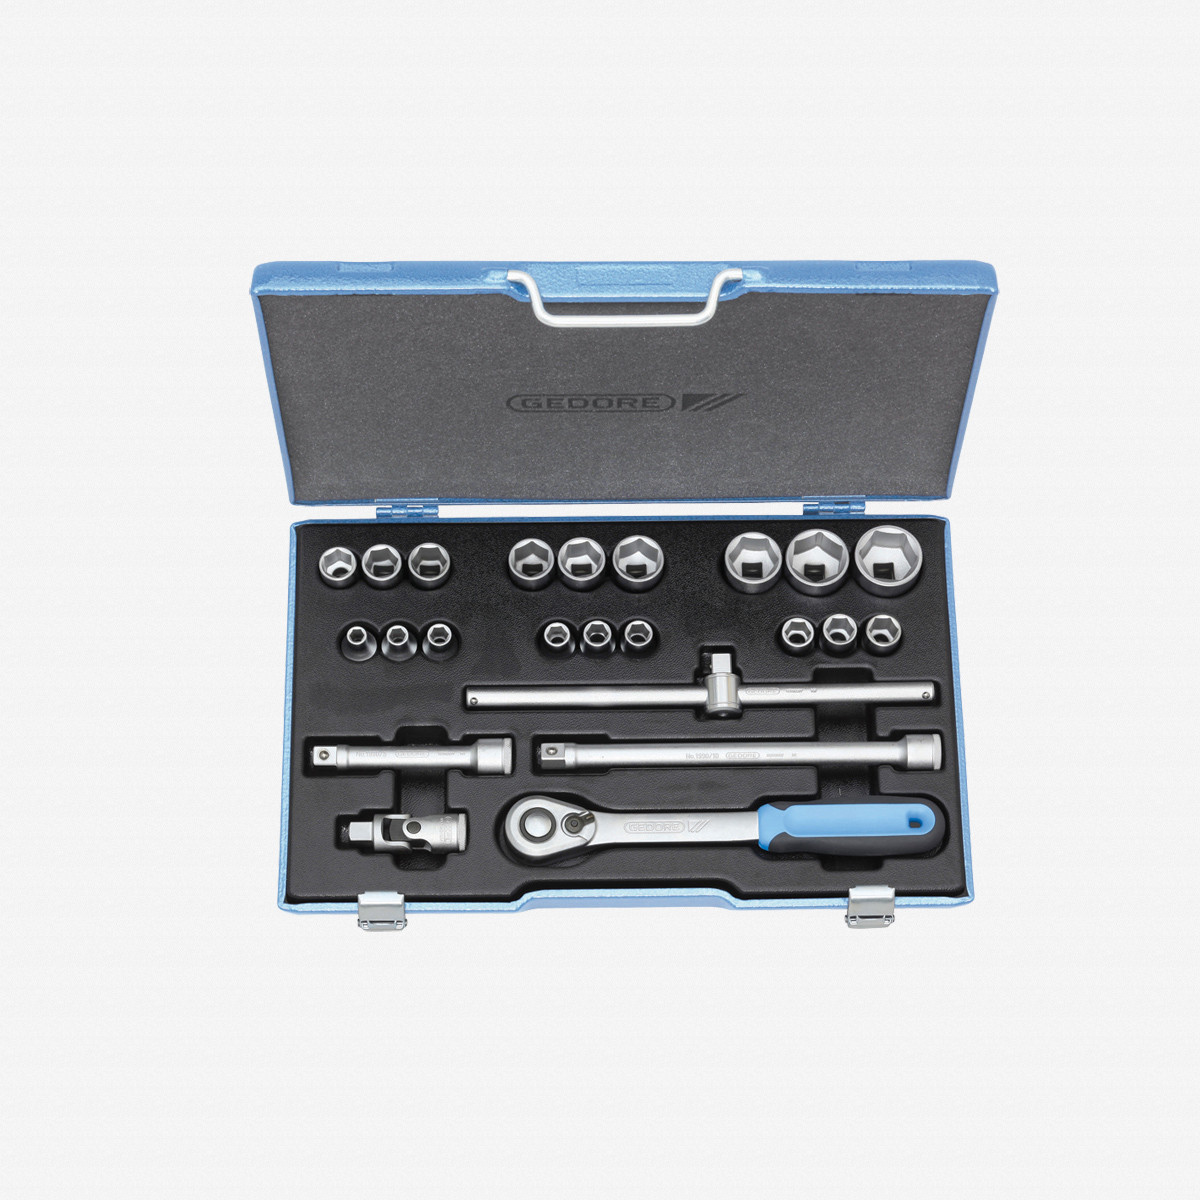 GEDORE 25 PK-012 Double Ended Socket Wrench Set 12 pcs 8-19 mm